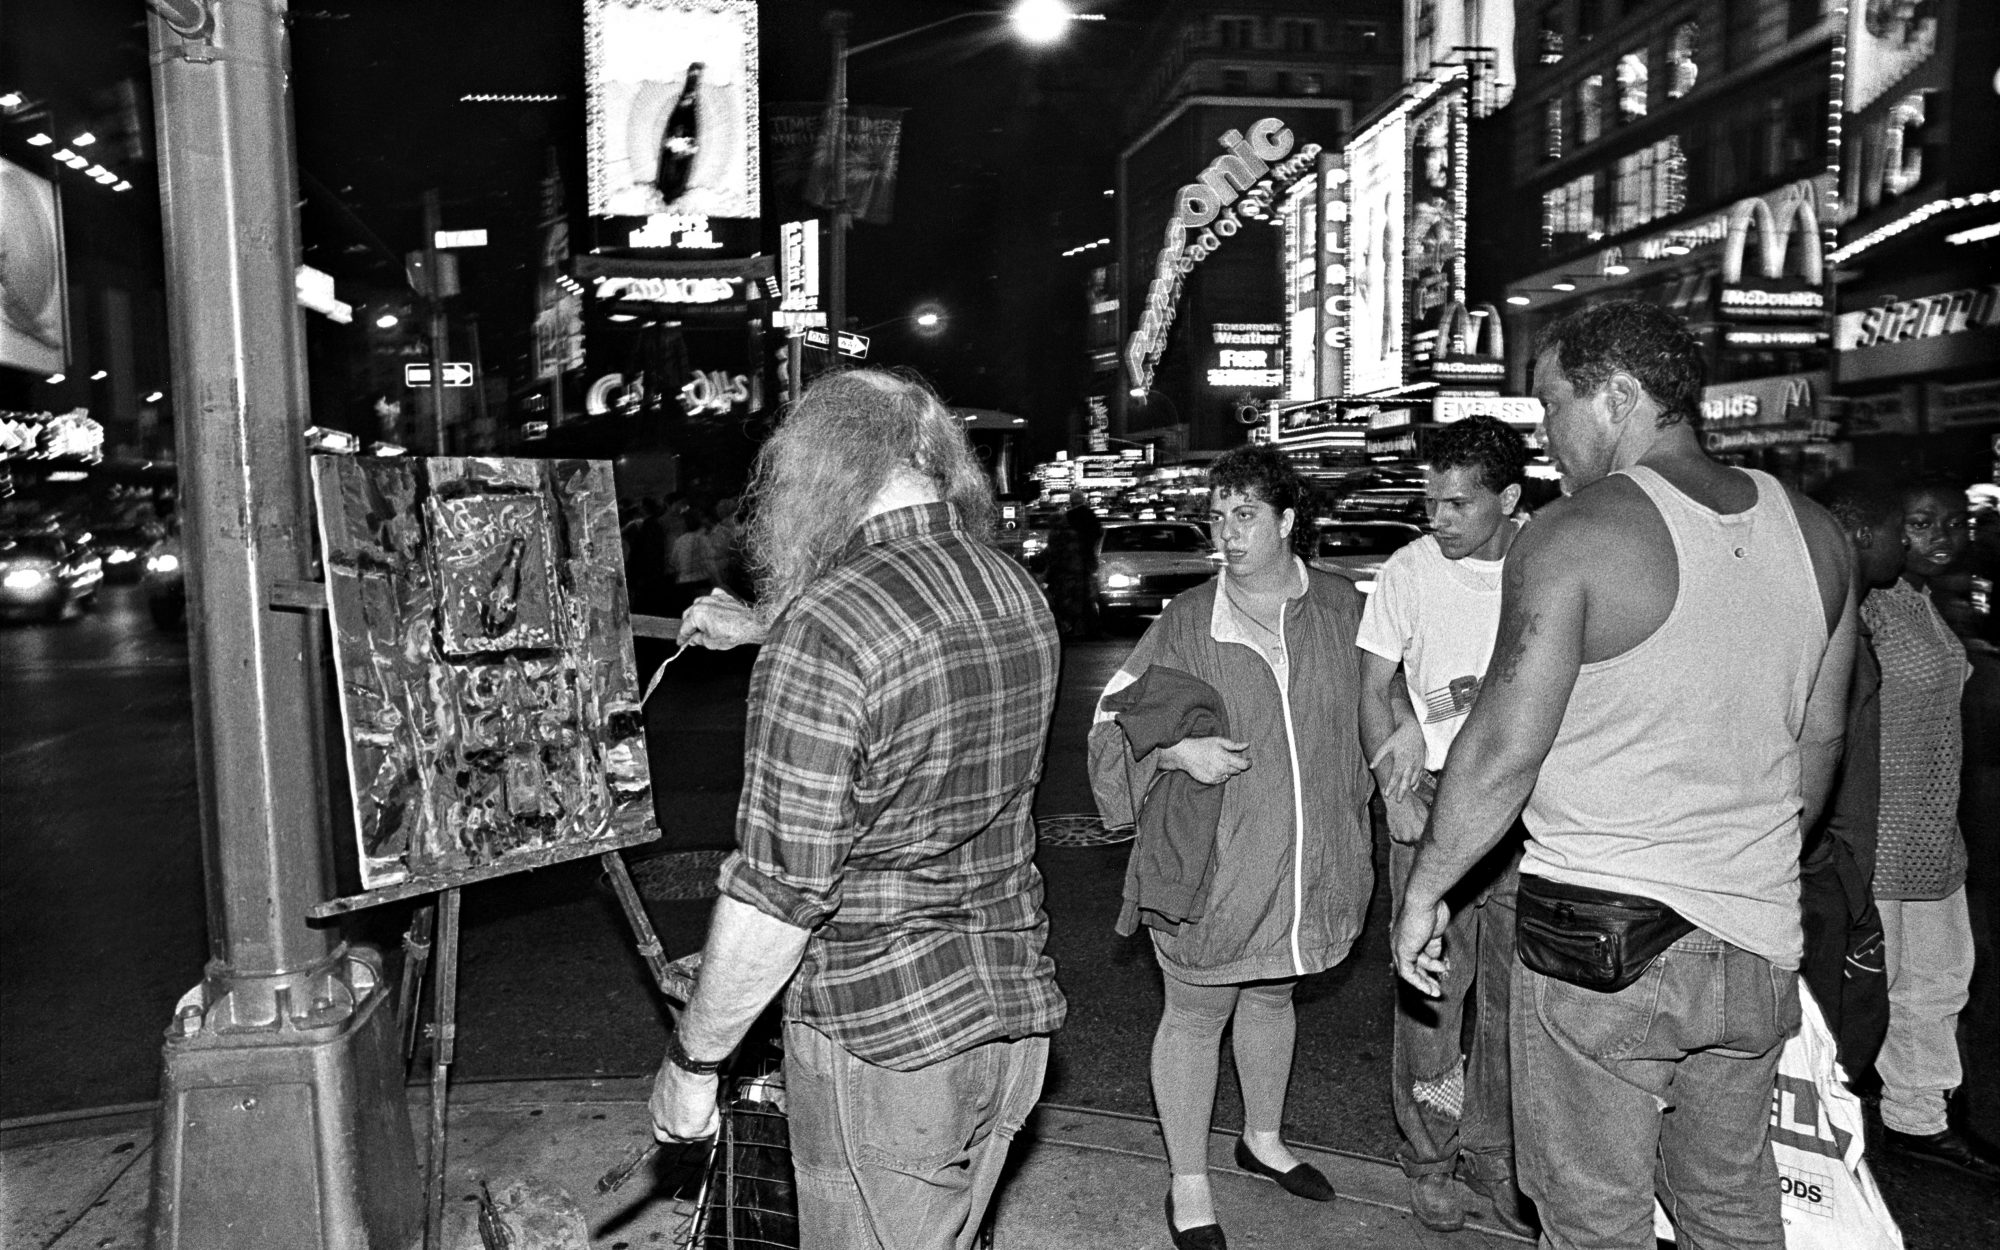 A Visual Time Capsule of New York in the '80s, in All Its Seedy Glory